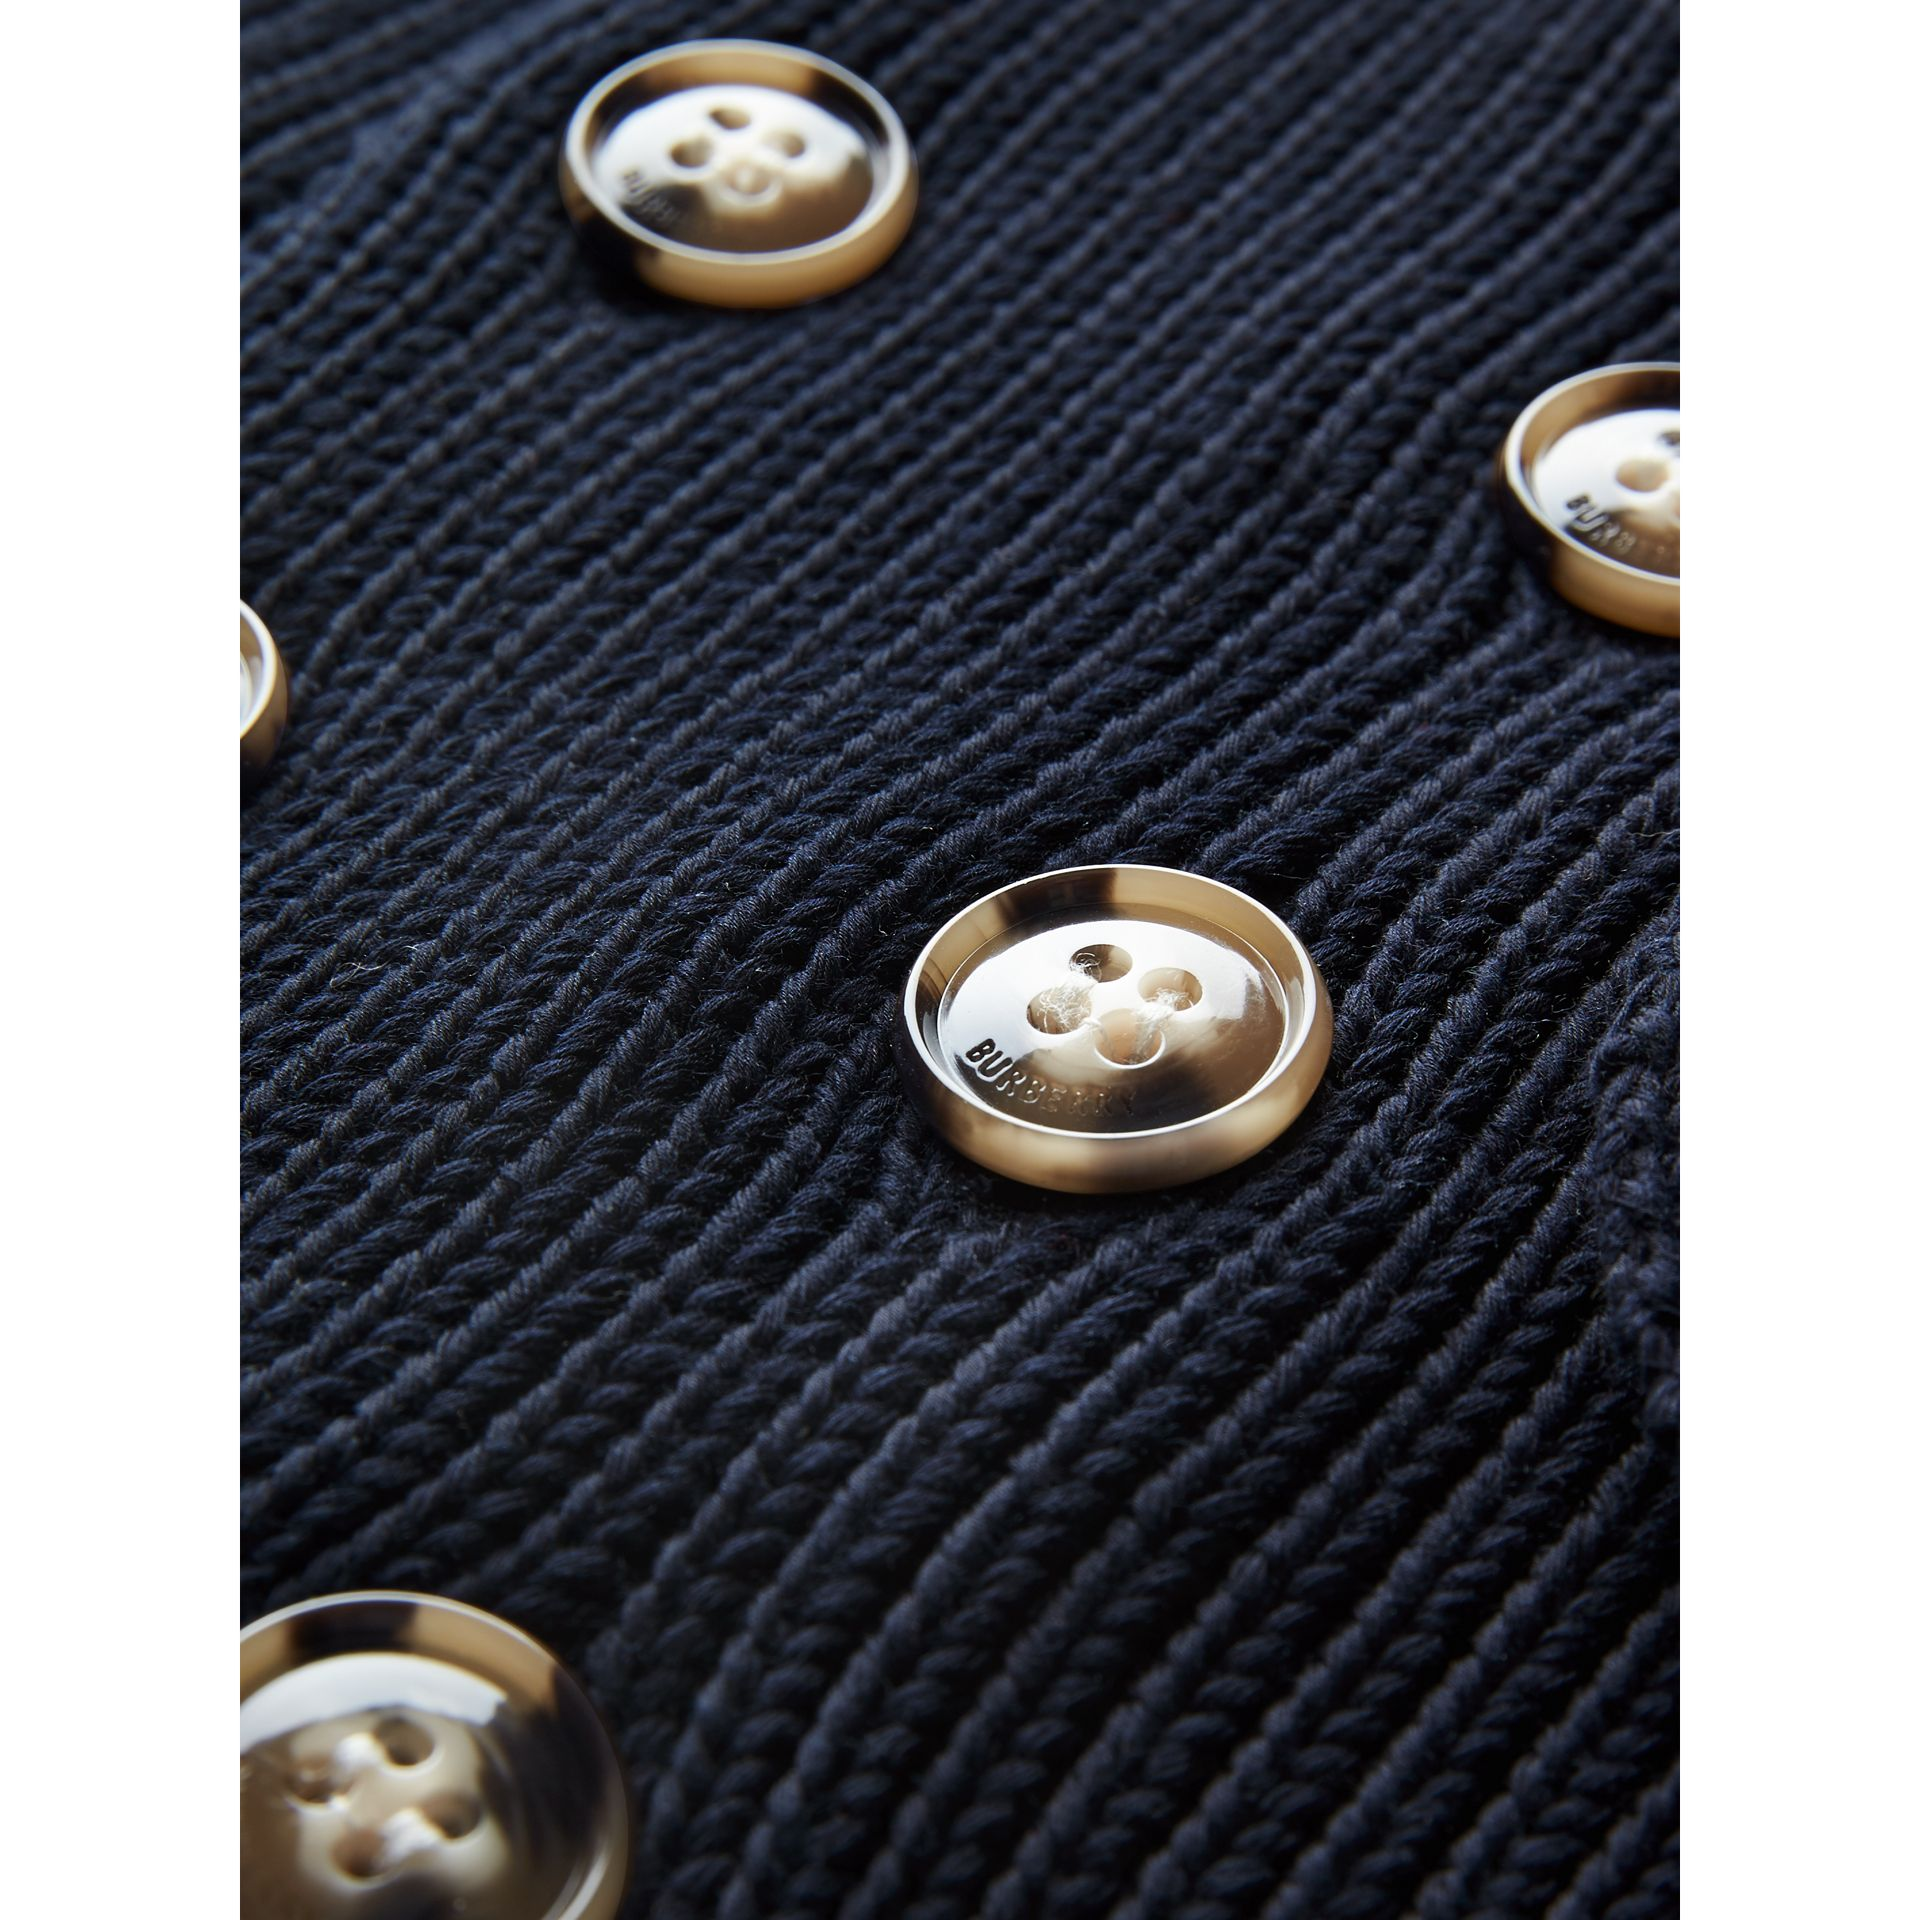 Cotton Knit Pea Coat Cardigan in Navy | Burberry - gallery image 1